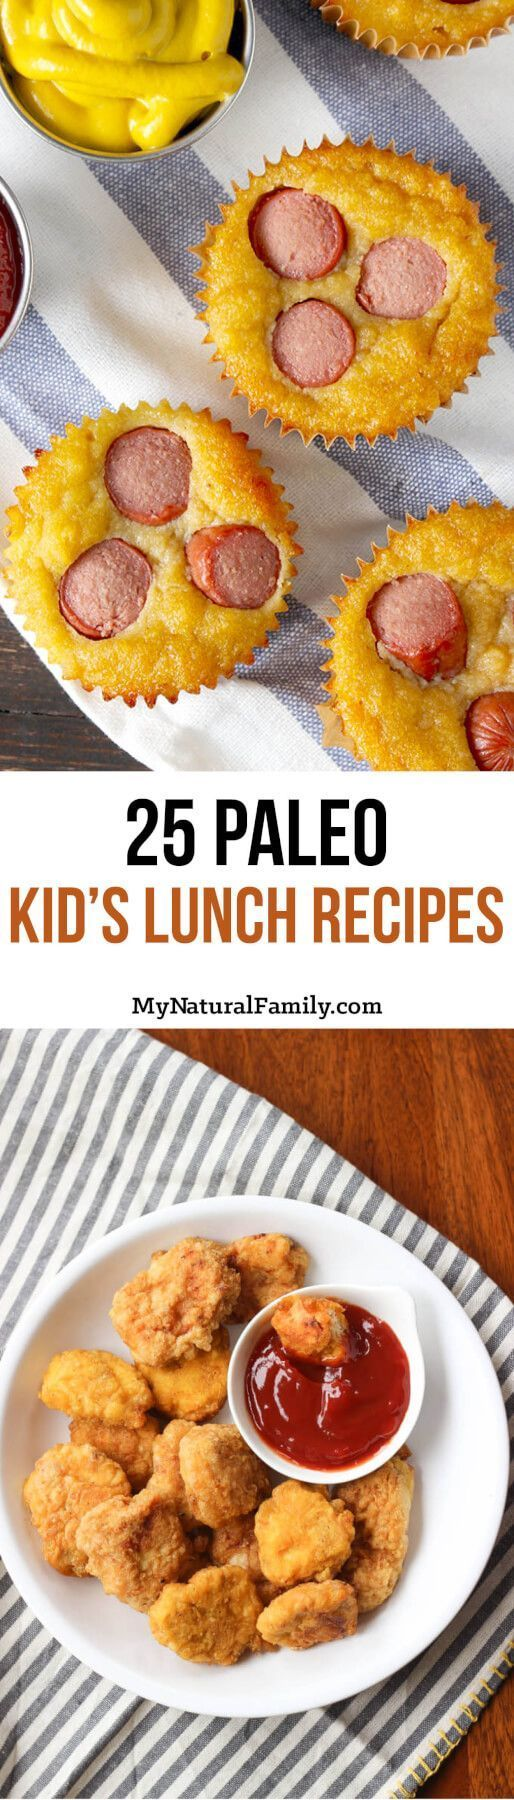 25 Paleo Kid's Lunch Recipes